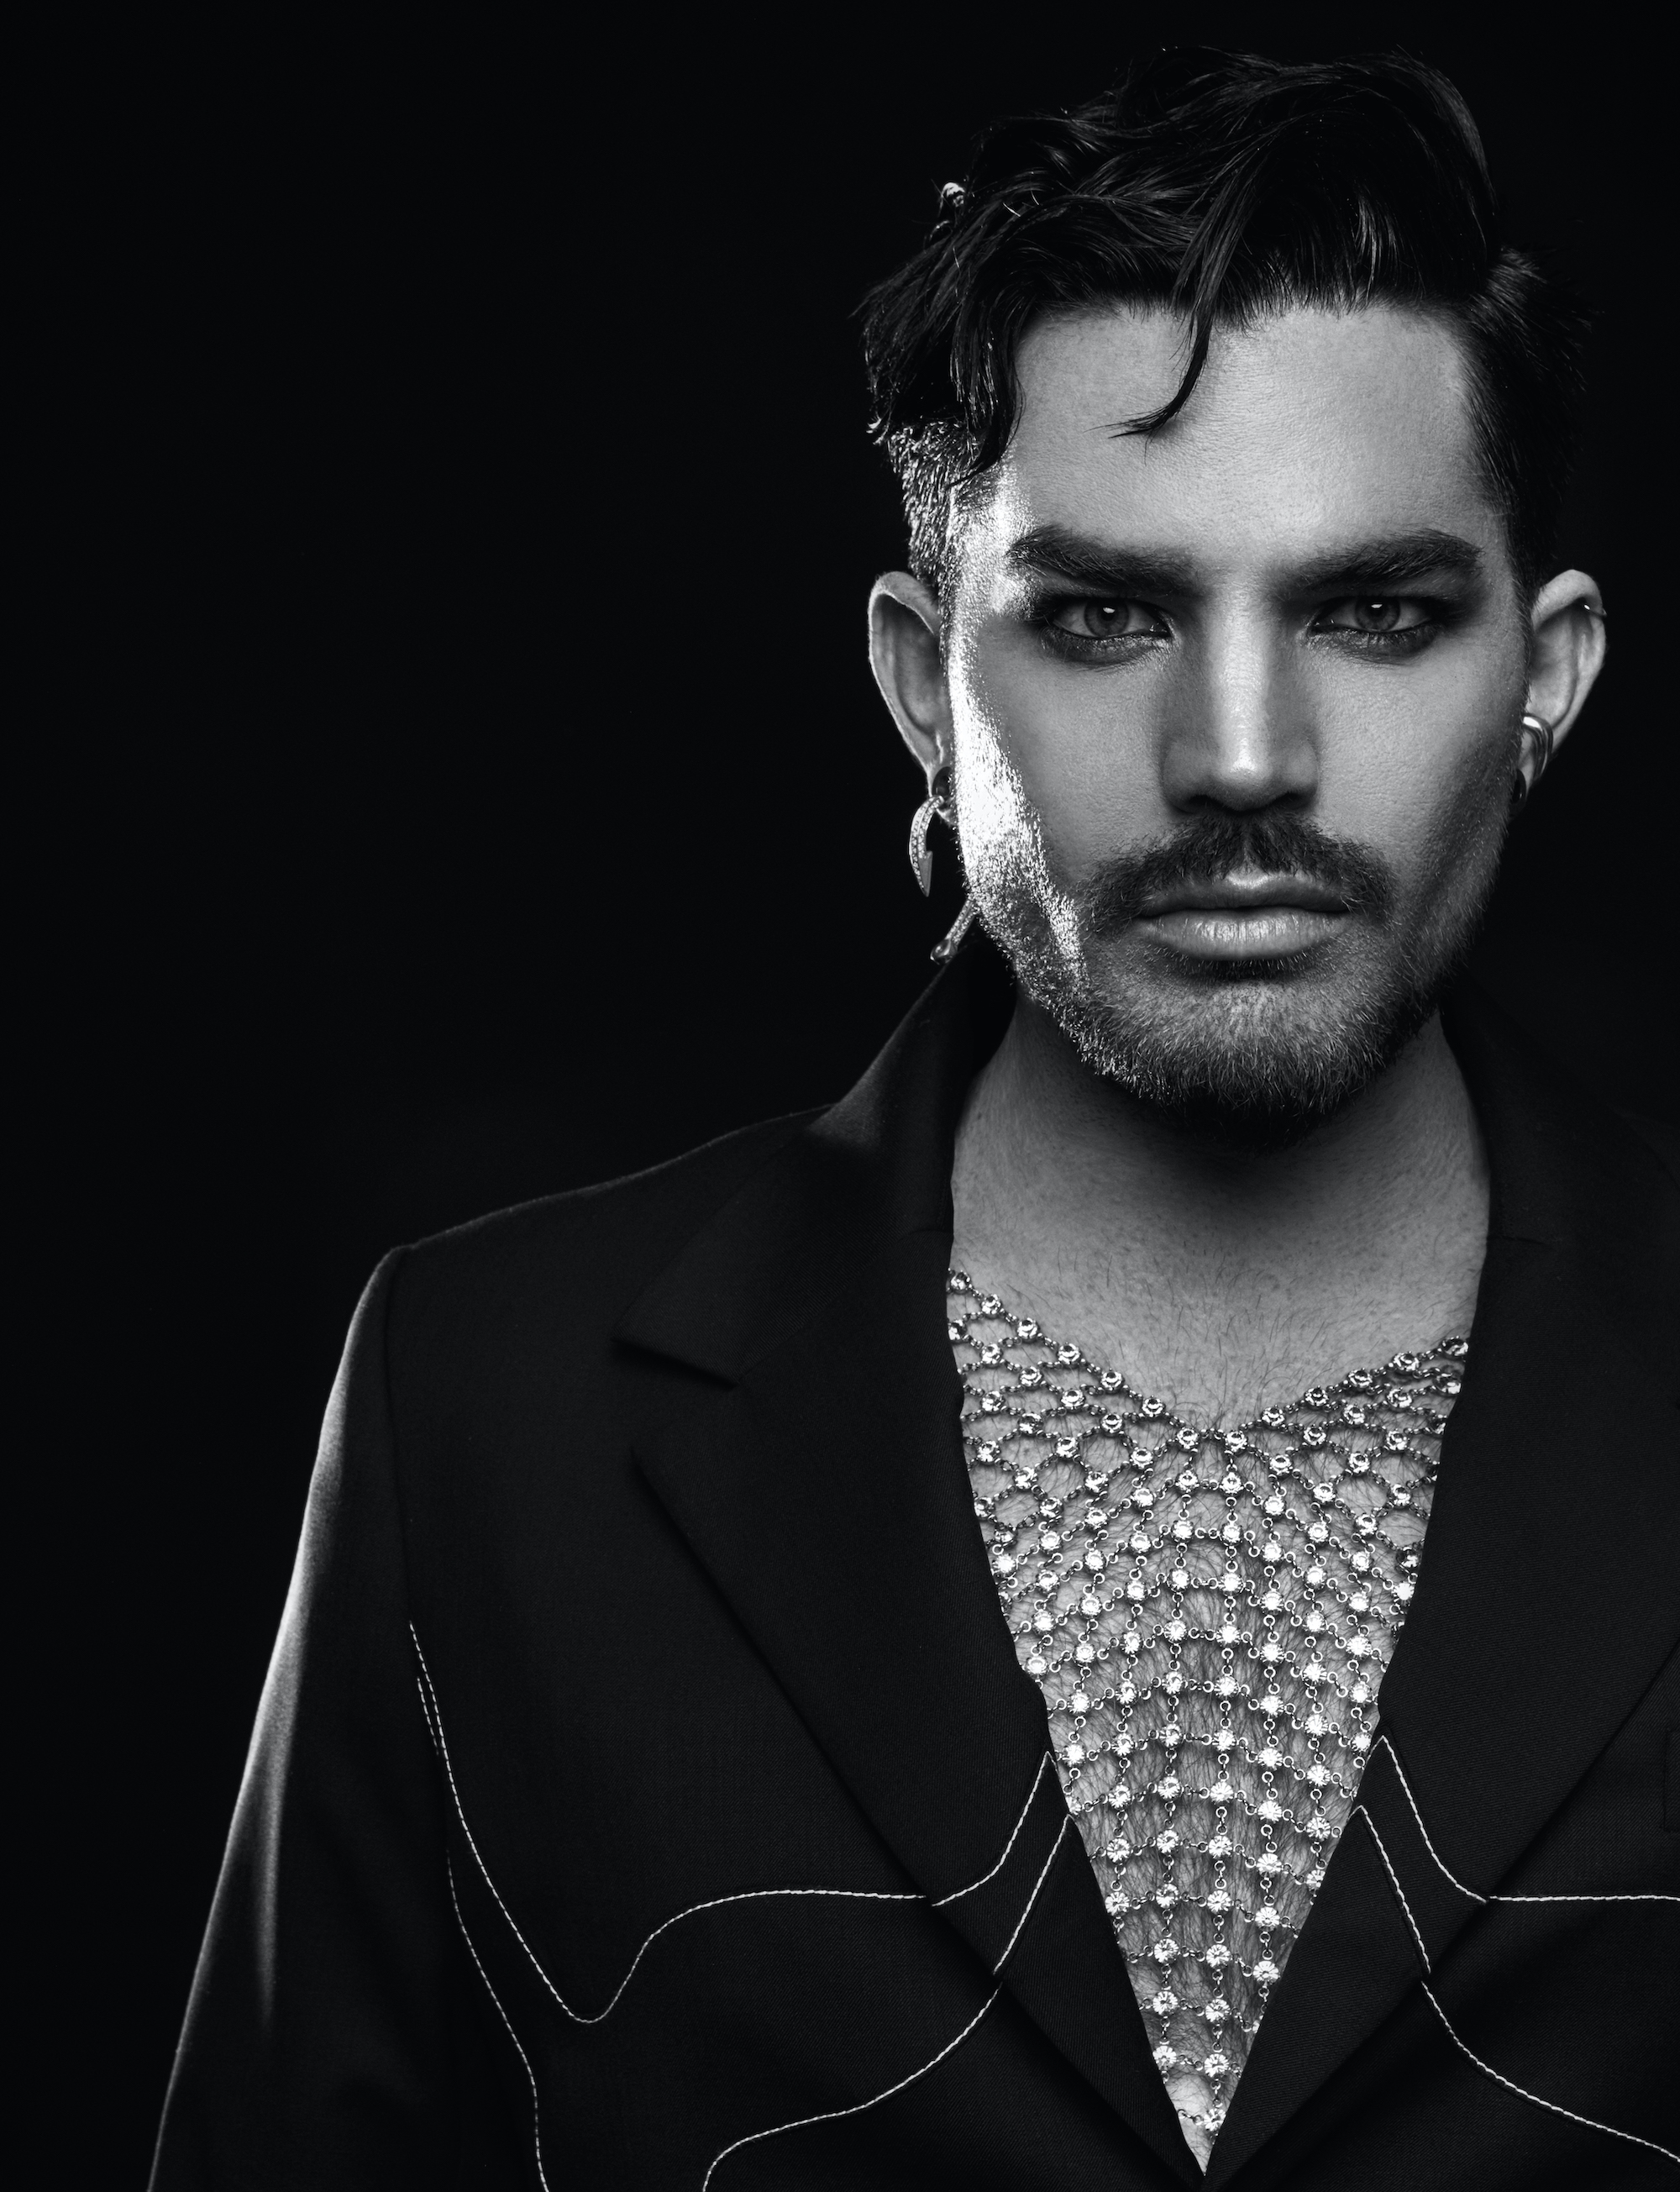 Adam Lambert fronts the cover of Rollacoaster SS20 issue in a chain mail top